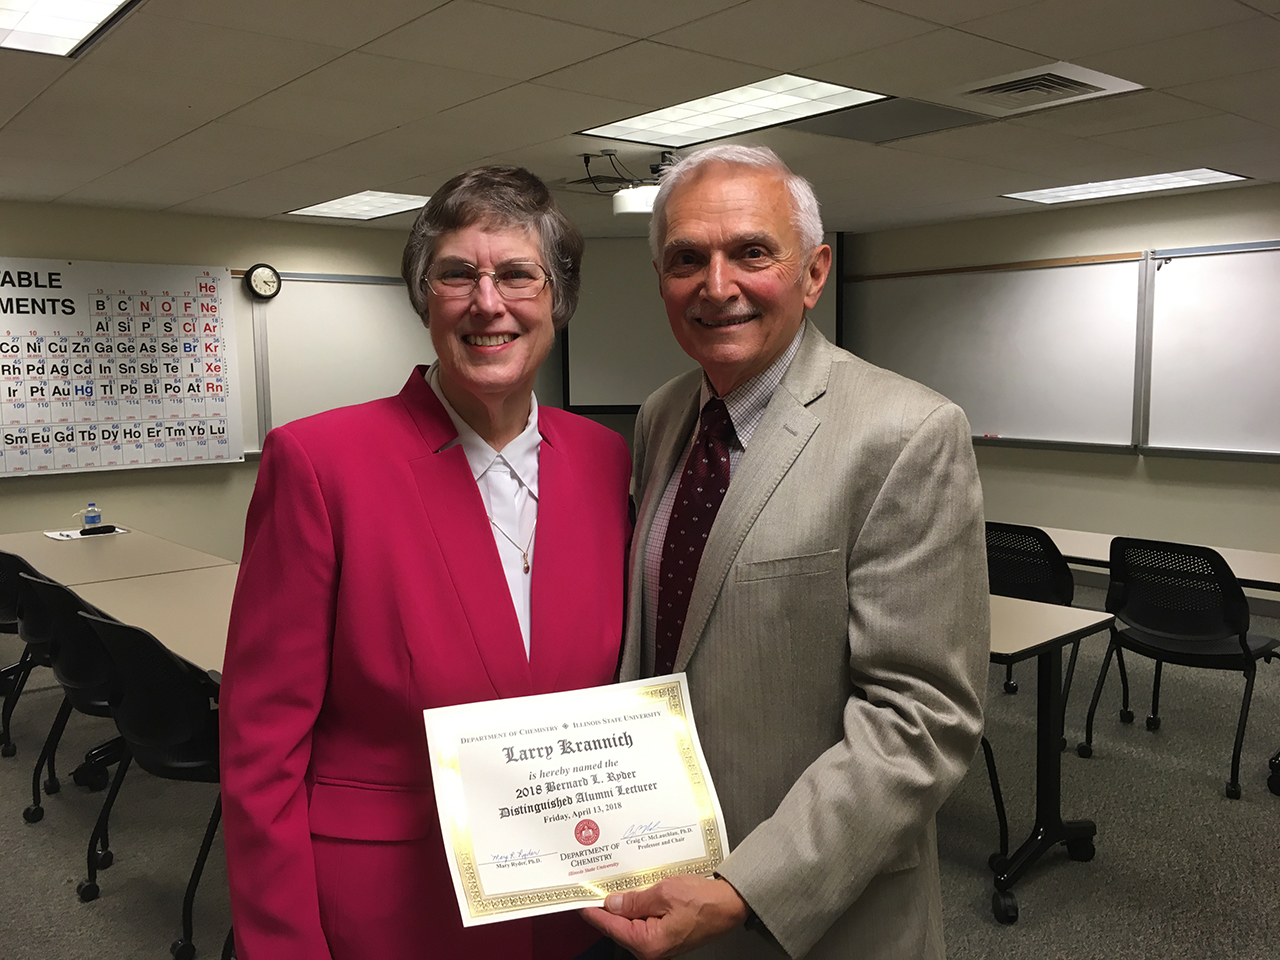 woman and man standing together in a classroom with the man holding a certificate